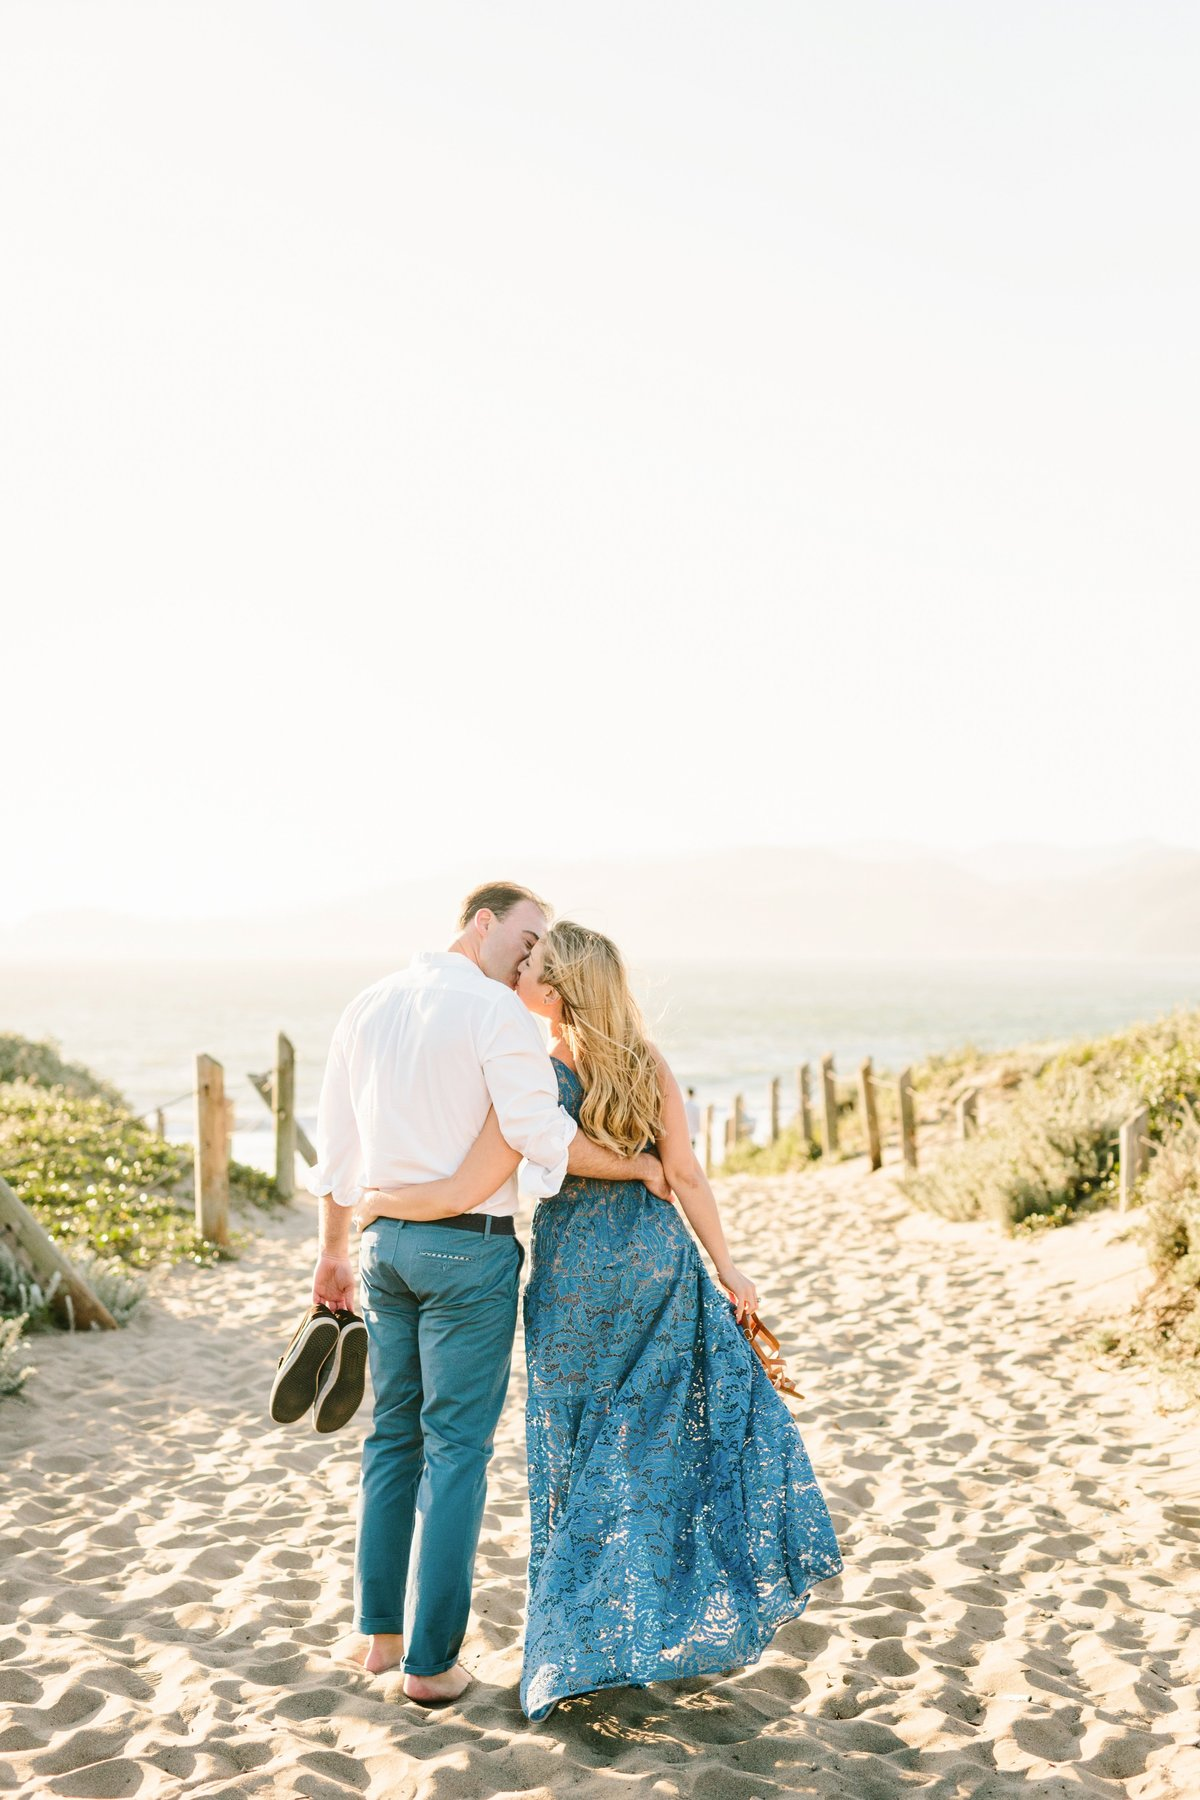 Best California Engagement Photographer-Jodee Debes Photography-134